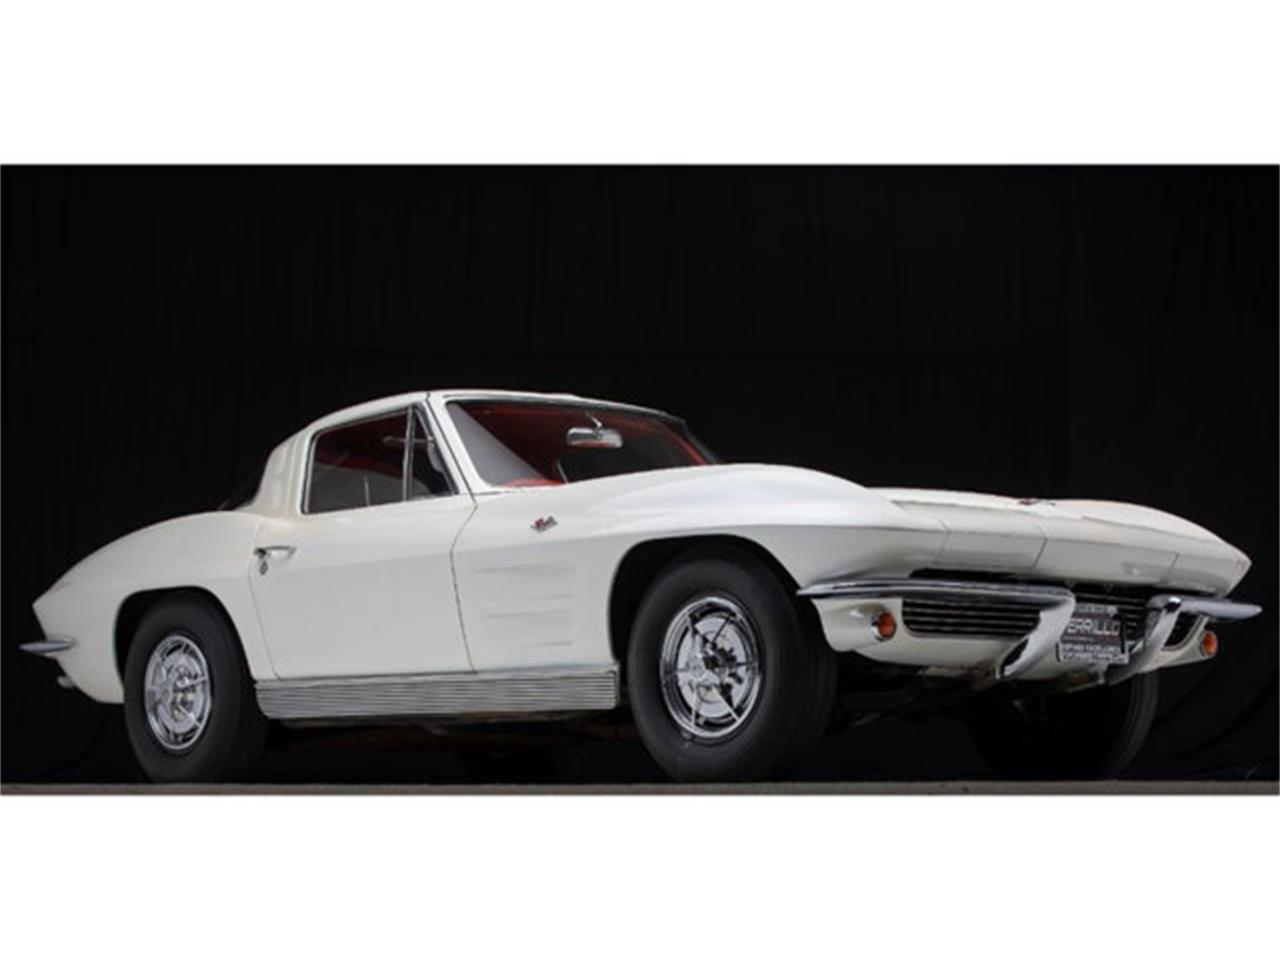 Large Picture of '63 Corvette located in New York - $139,999.00 Offered by Prestige Motor Car Co. - QOXV